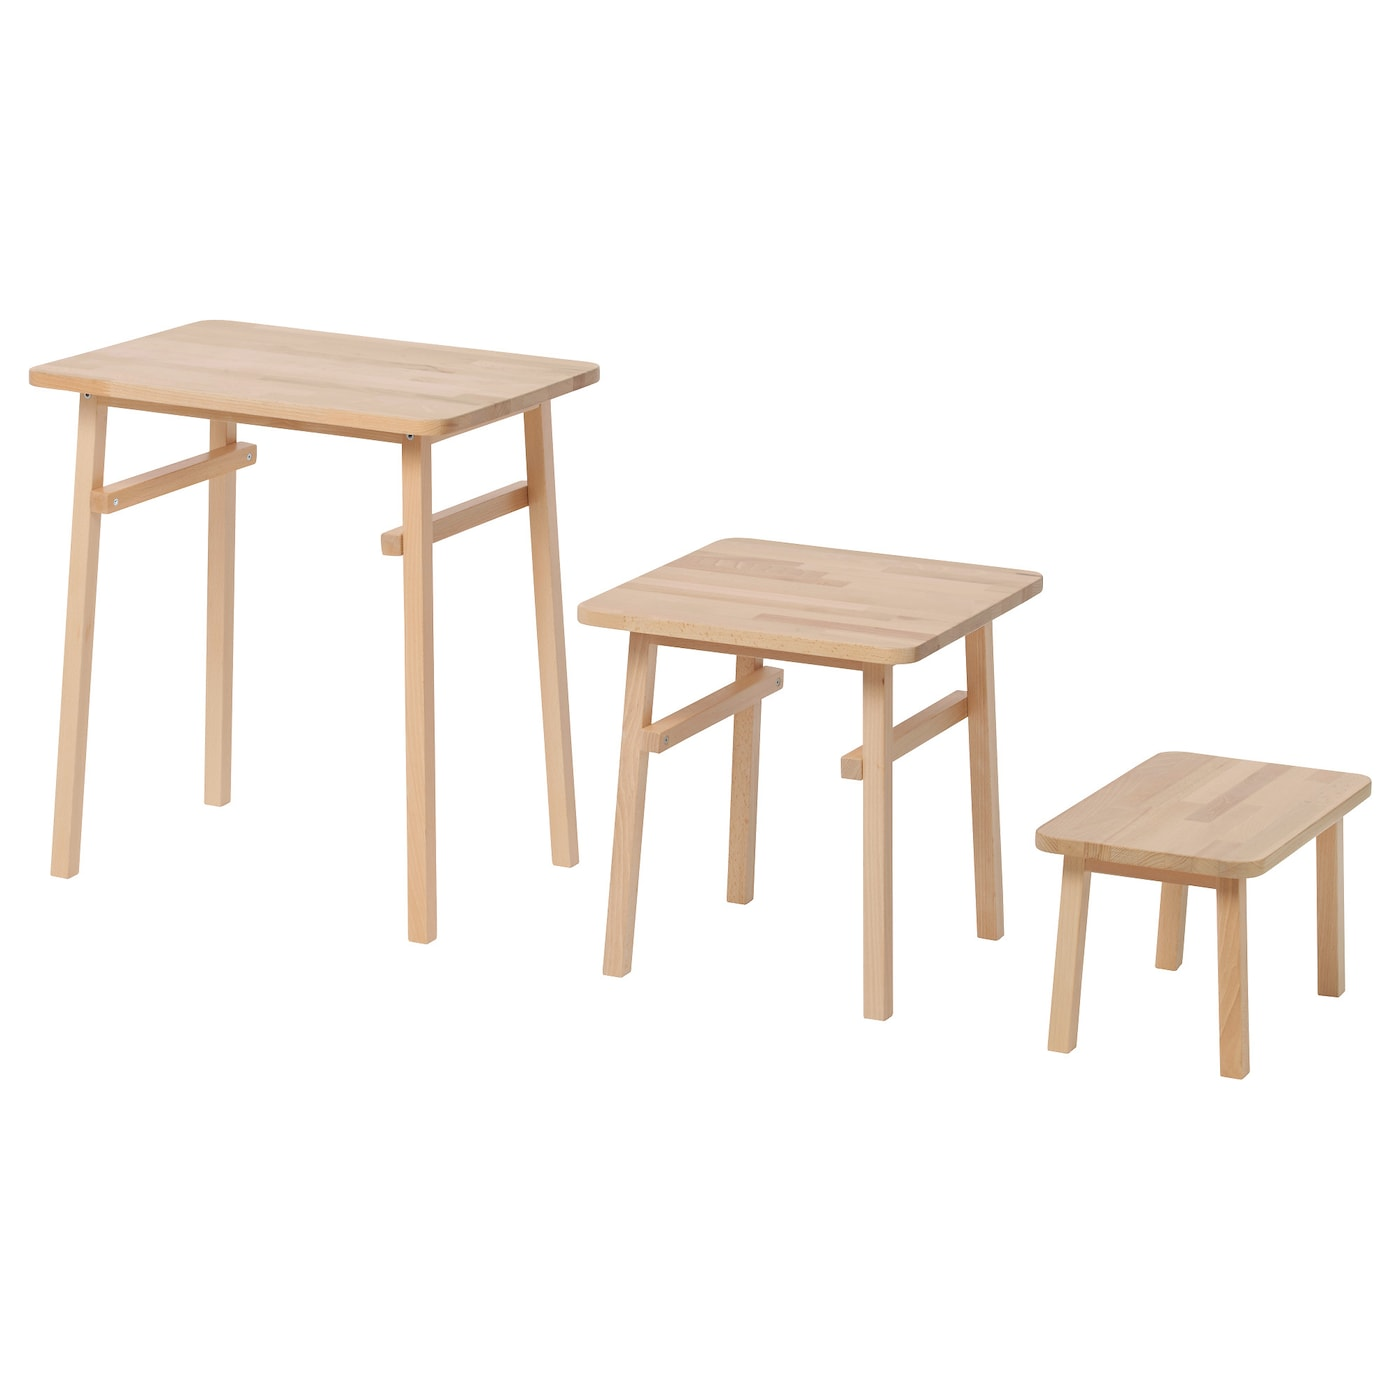 Ikea Ypperlig Nest Of Tables Set 3 Solid Beech Is A Hard Wearing